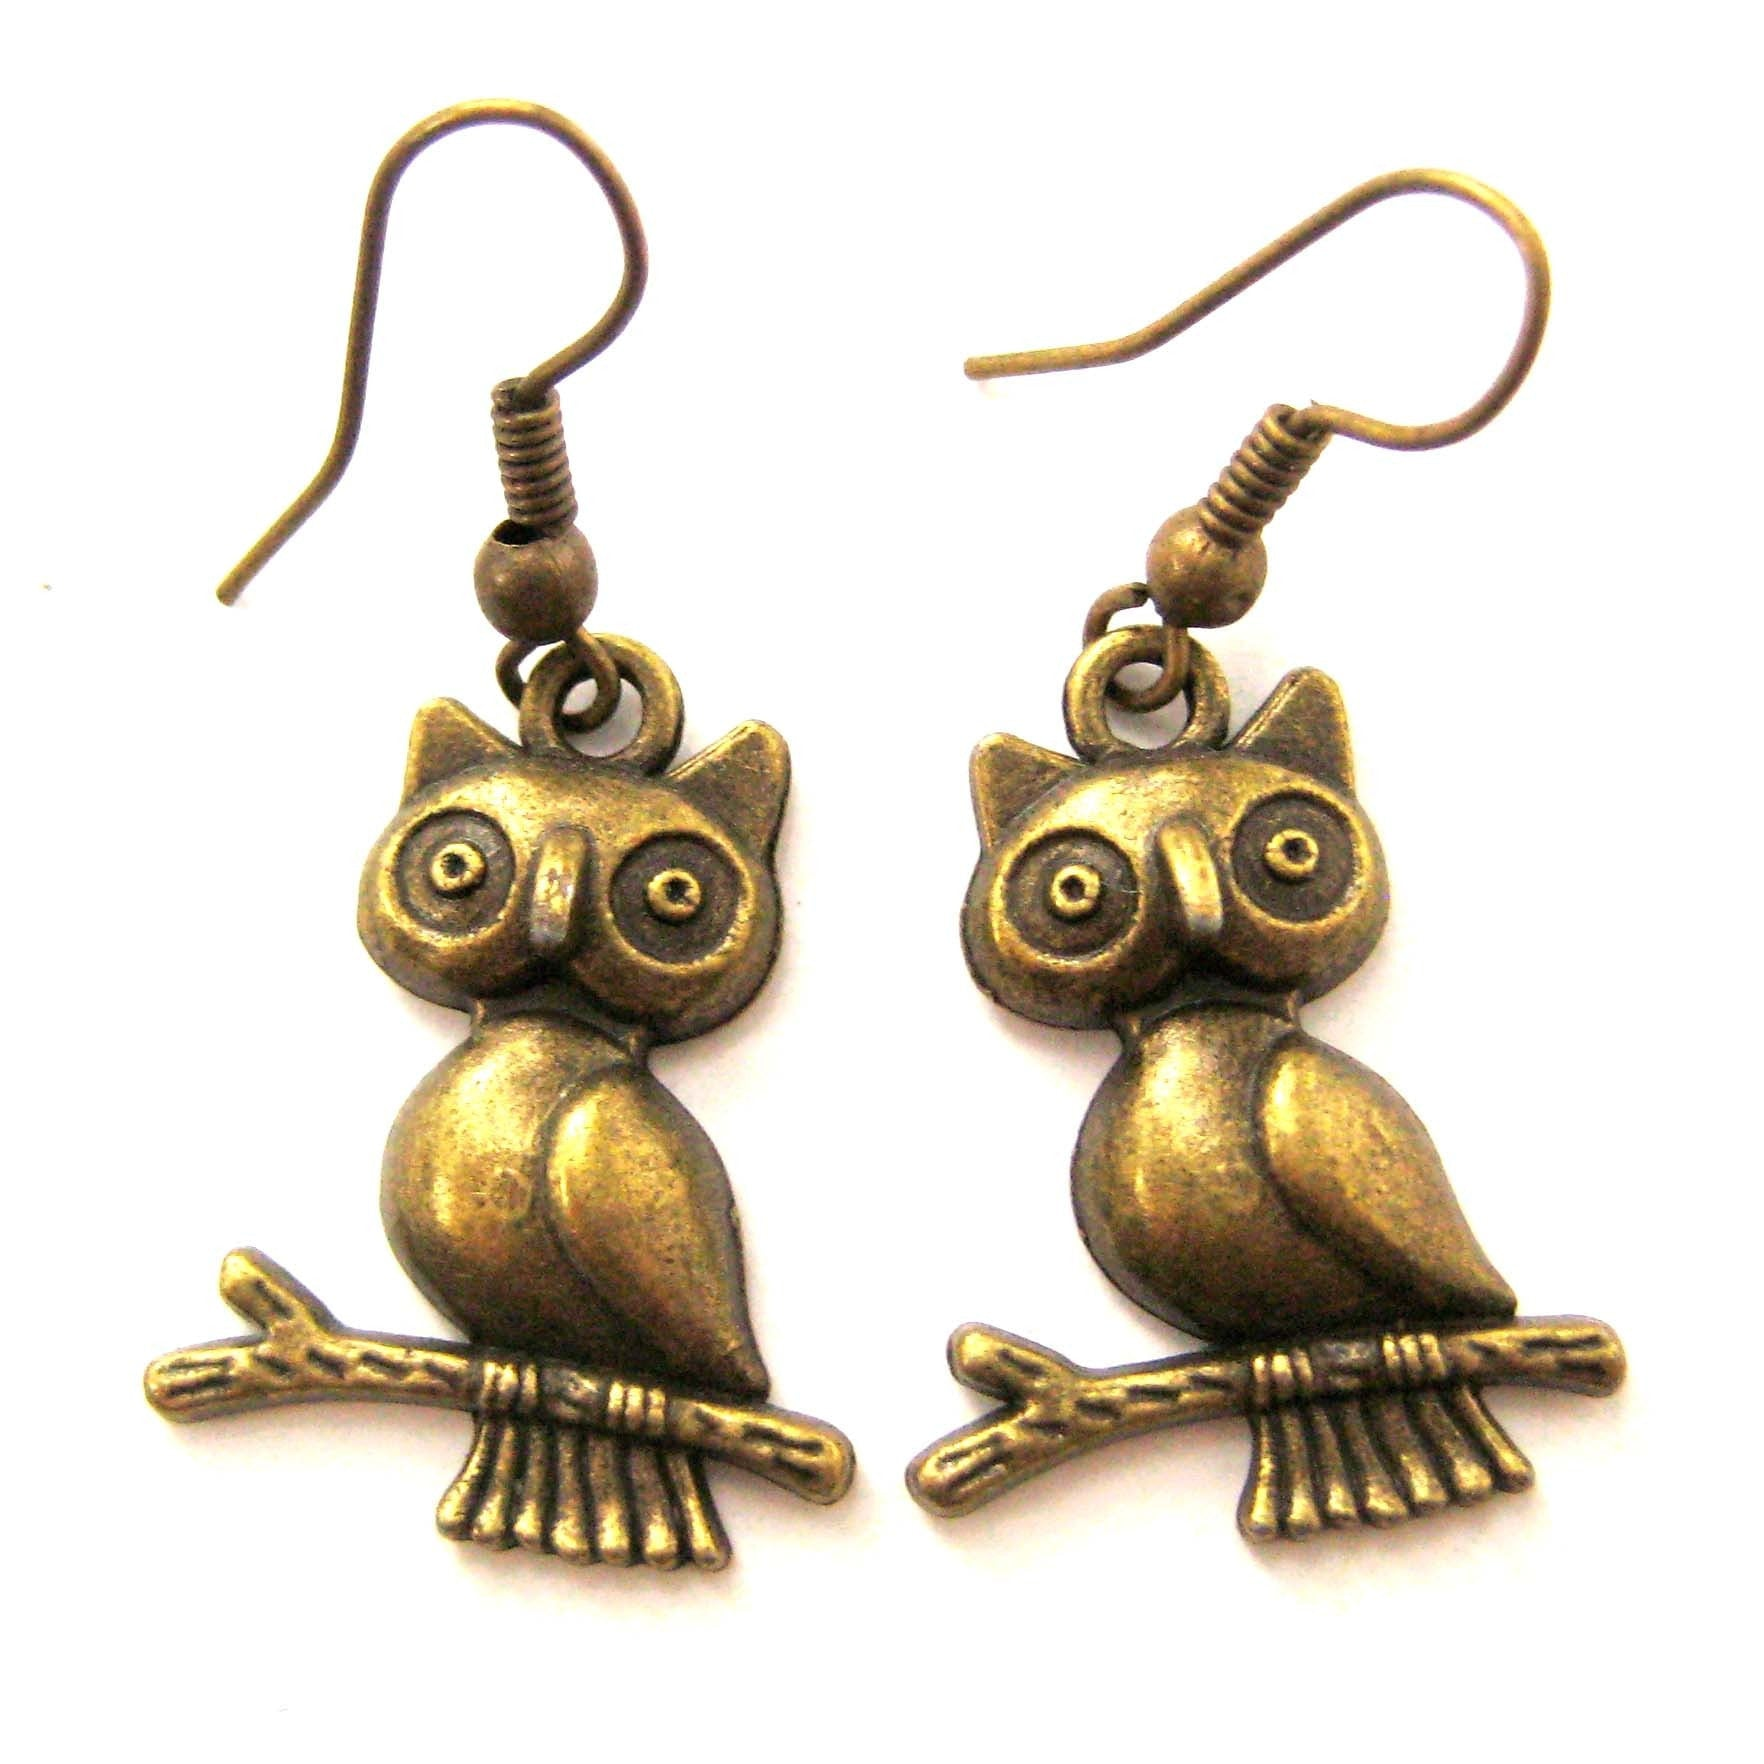 owls-on-a-branch-shaped-animal-dangle-earrings-in-brass-animal-jewelry